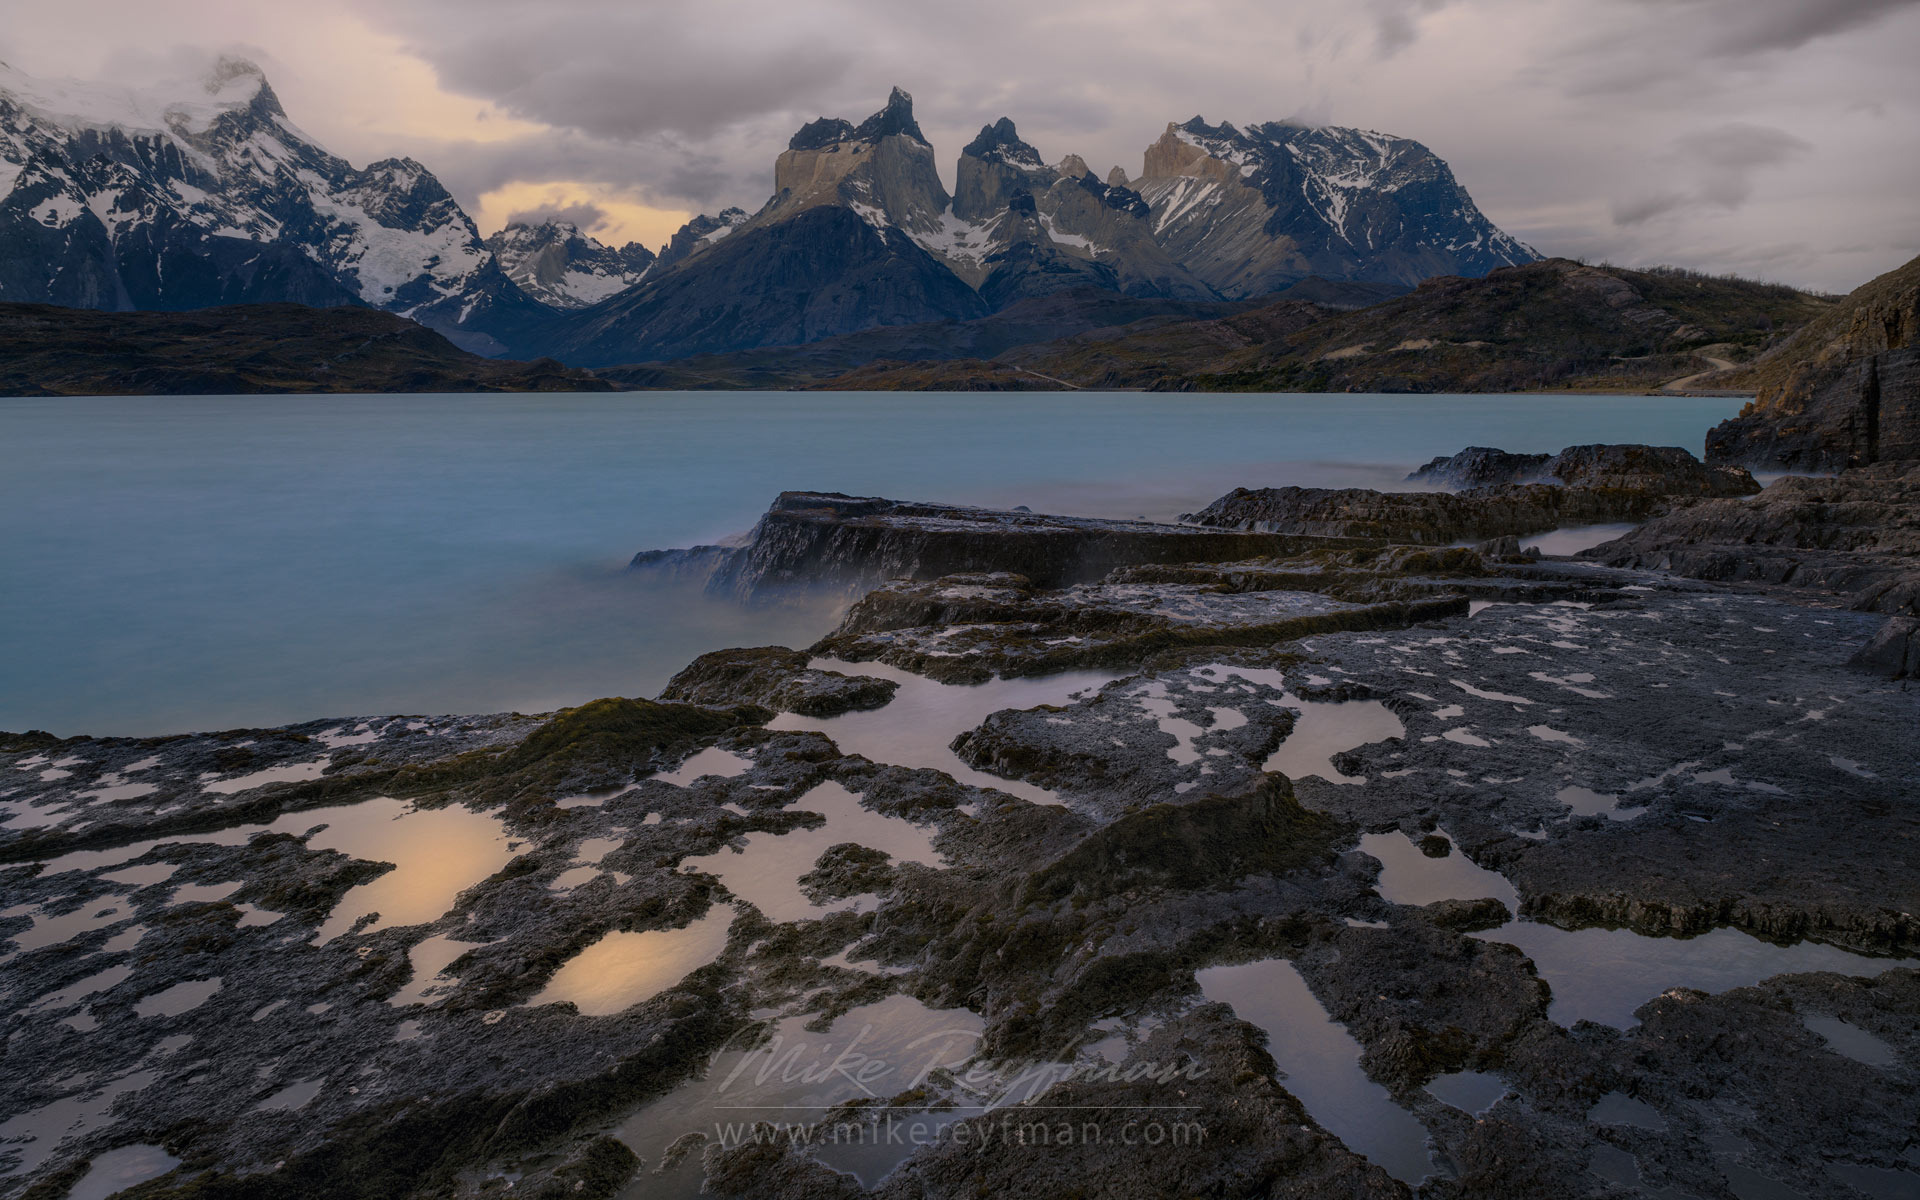 Grey day on Lago Pehoe. Cordillera del Paine, Torres del Paine National Park, Ultima Esperanza Province, Magallanes and Antartica Chilena Region XII, Patagonia, Chile.  - Torres-Del-Paine-National-Park-Patagonia-Chile - Mike Reyfman Photography